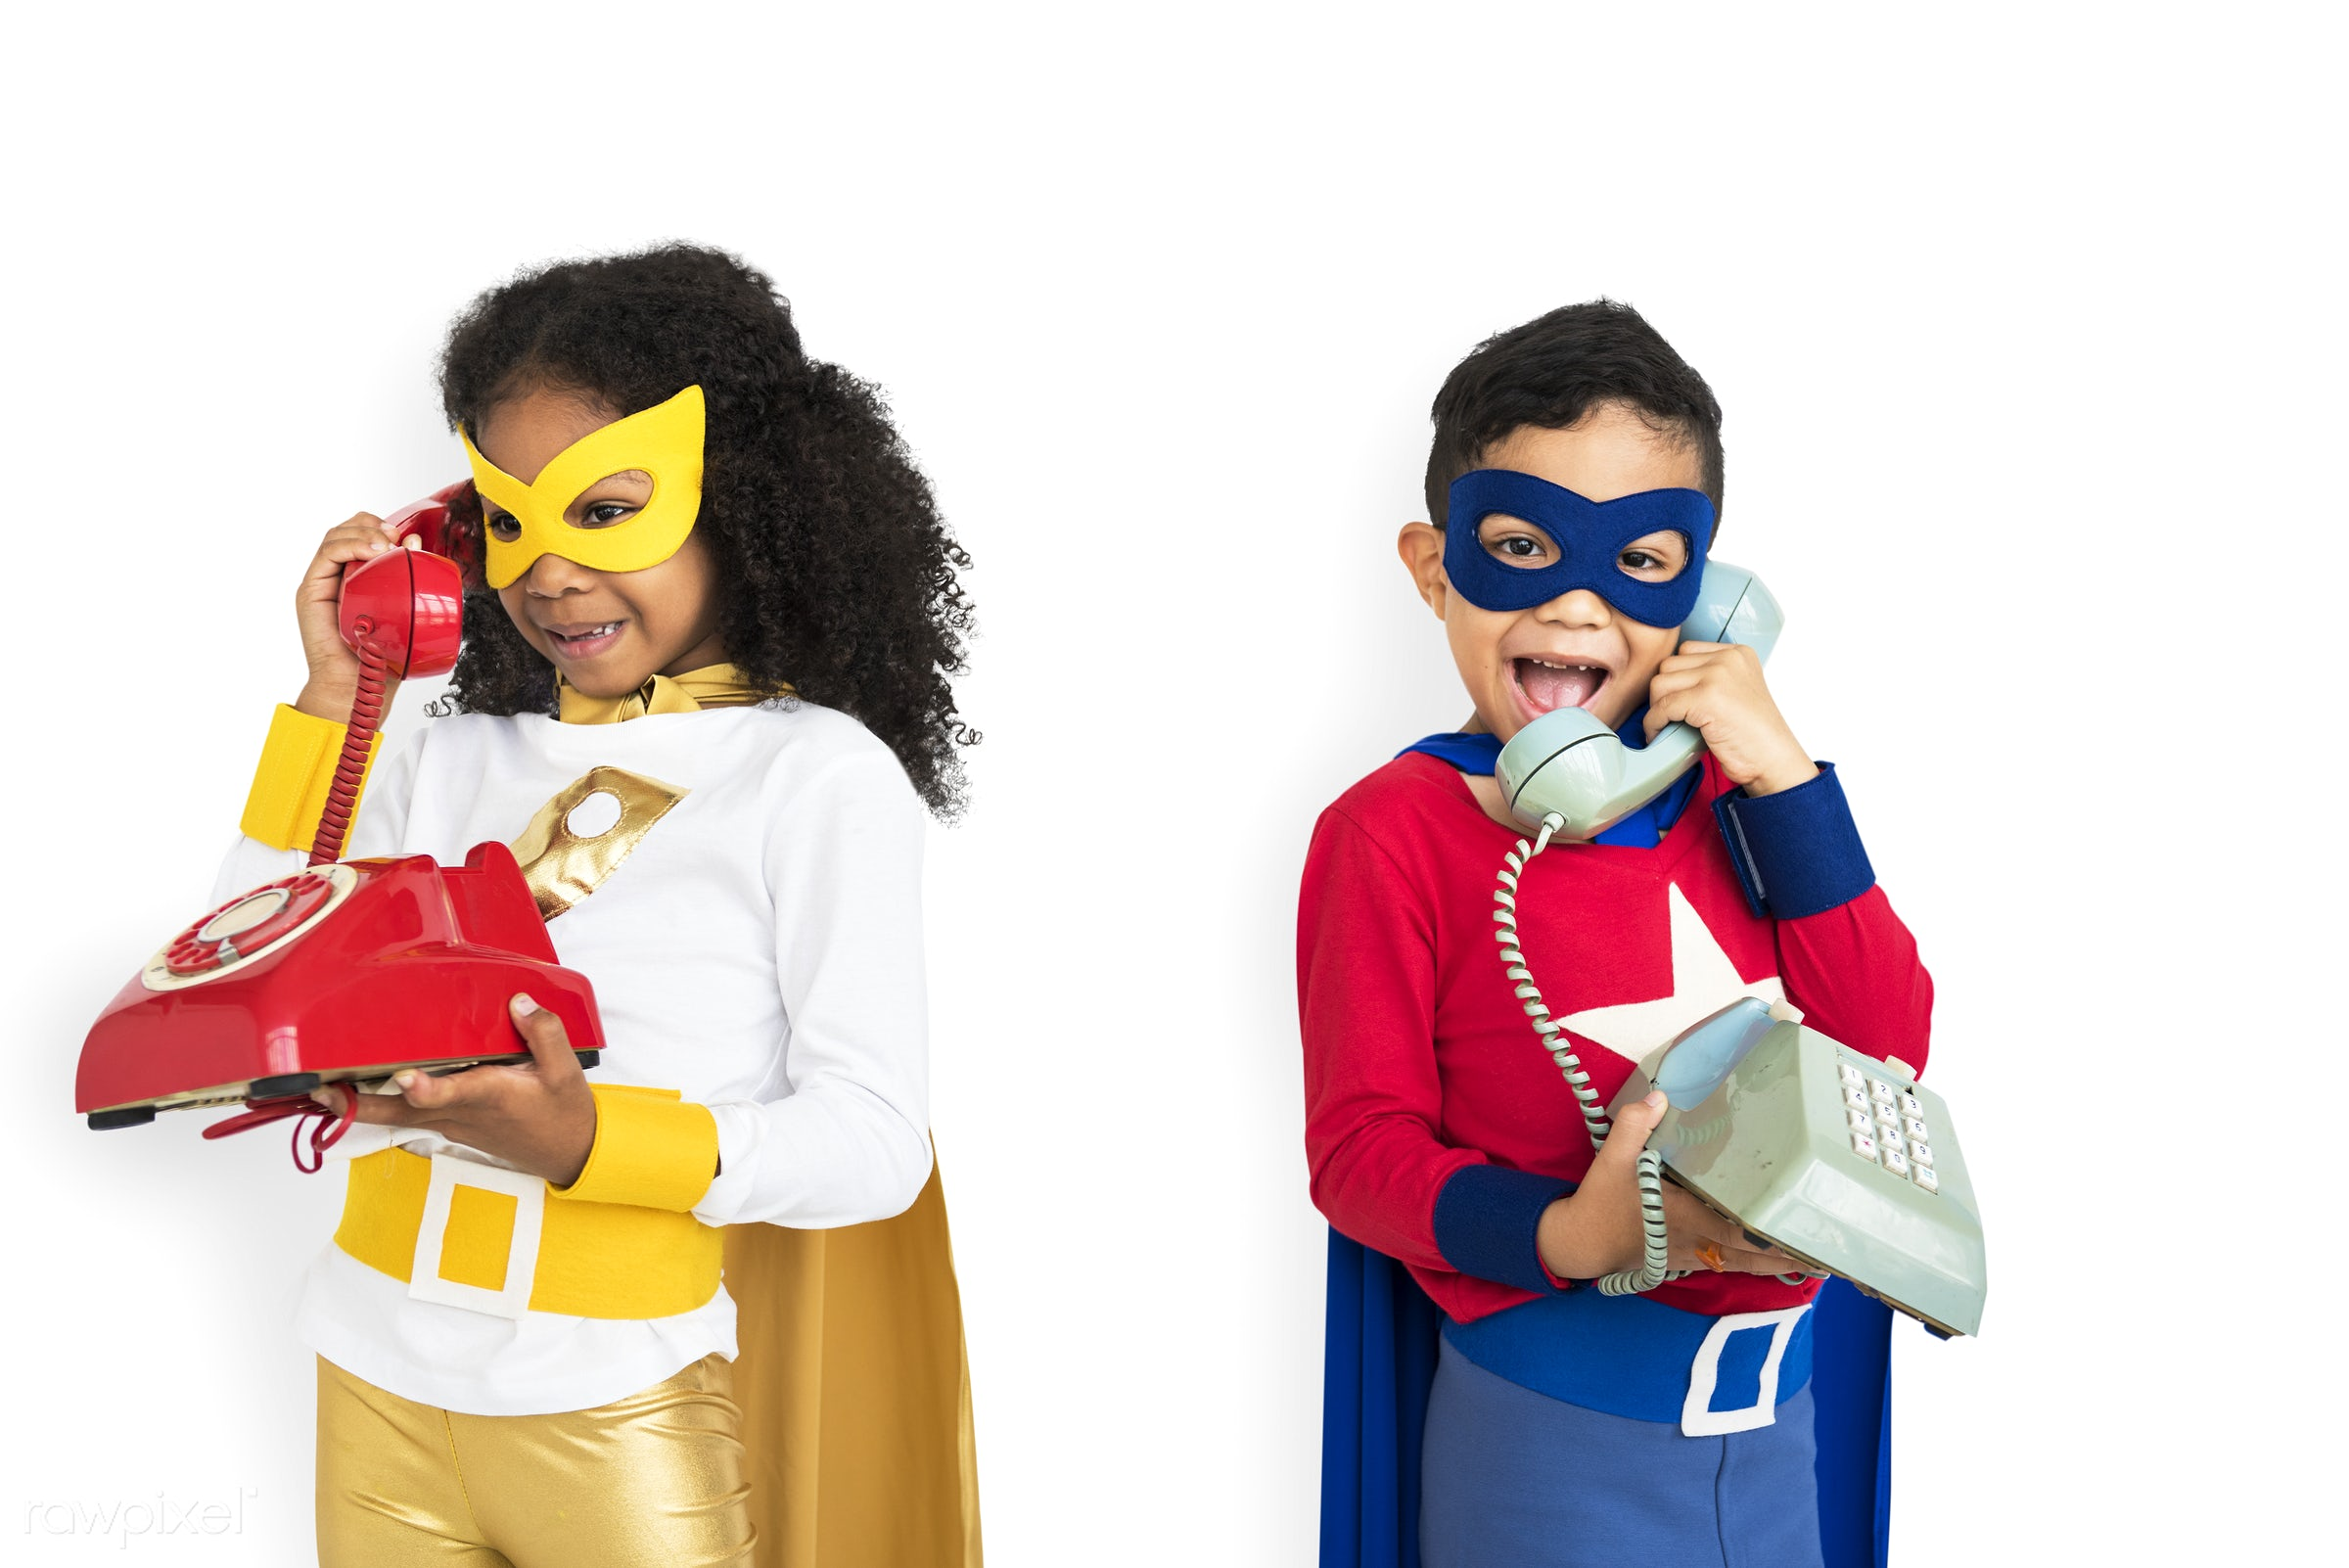 african descent, alone, black, cheerful, costume, isolated, kid, landline, one, studio, superhero, telephone, young, youth